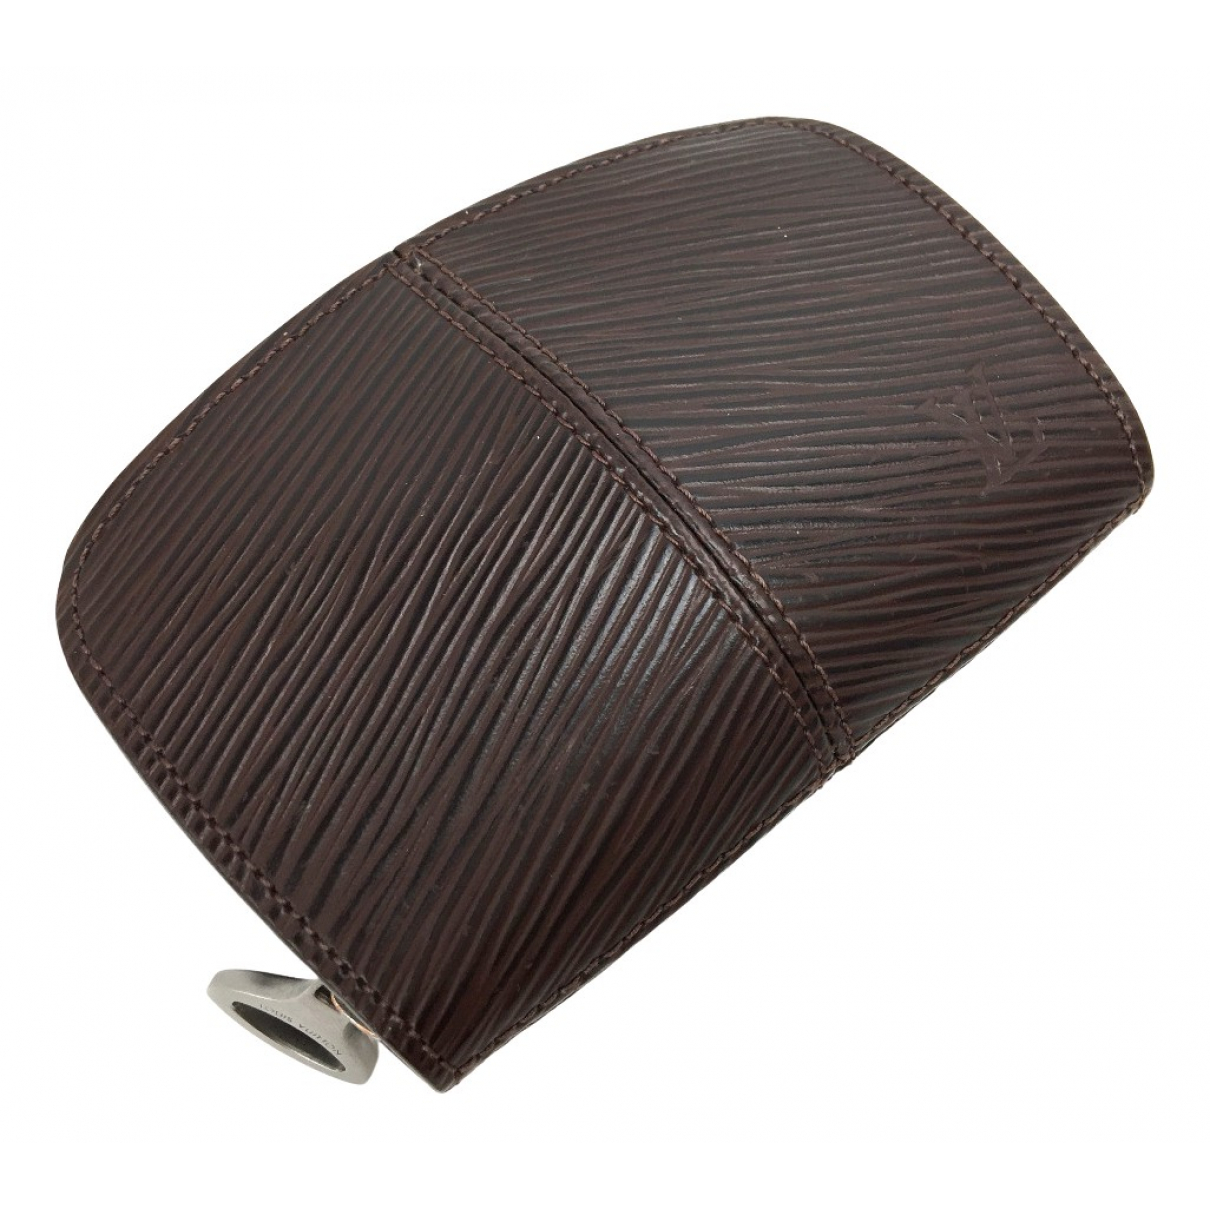 Louis Vuitton N Brown Leather Purses, wallet & cases for Women N